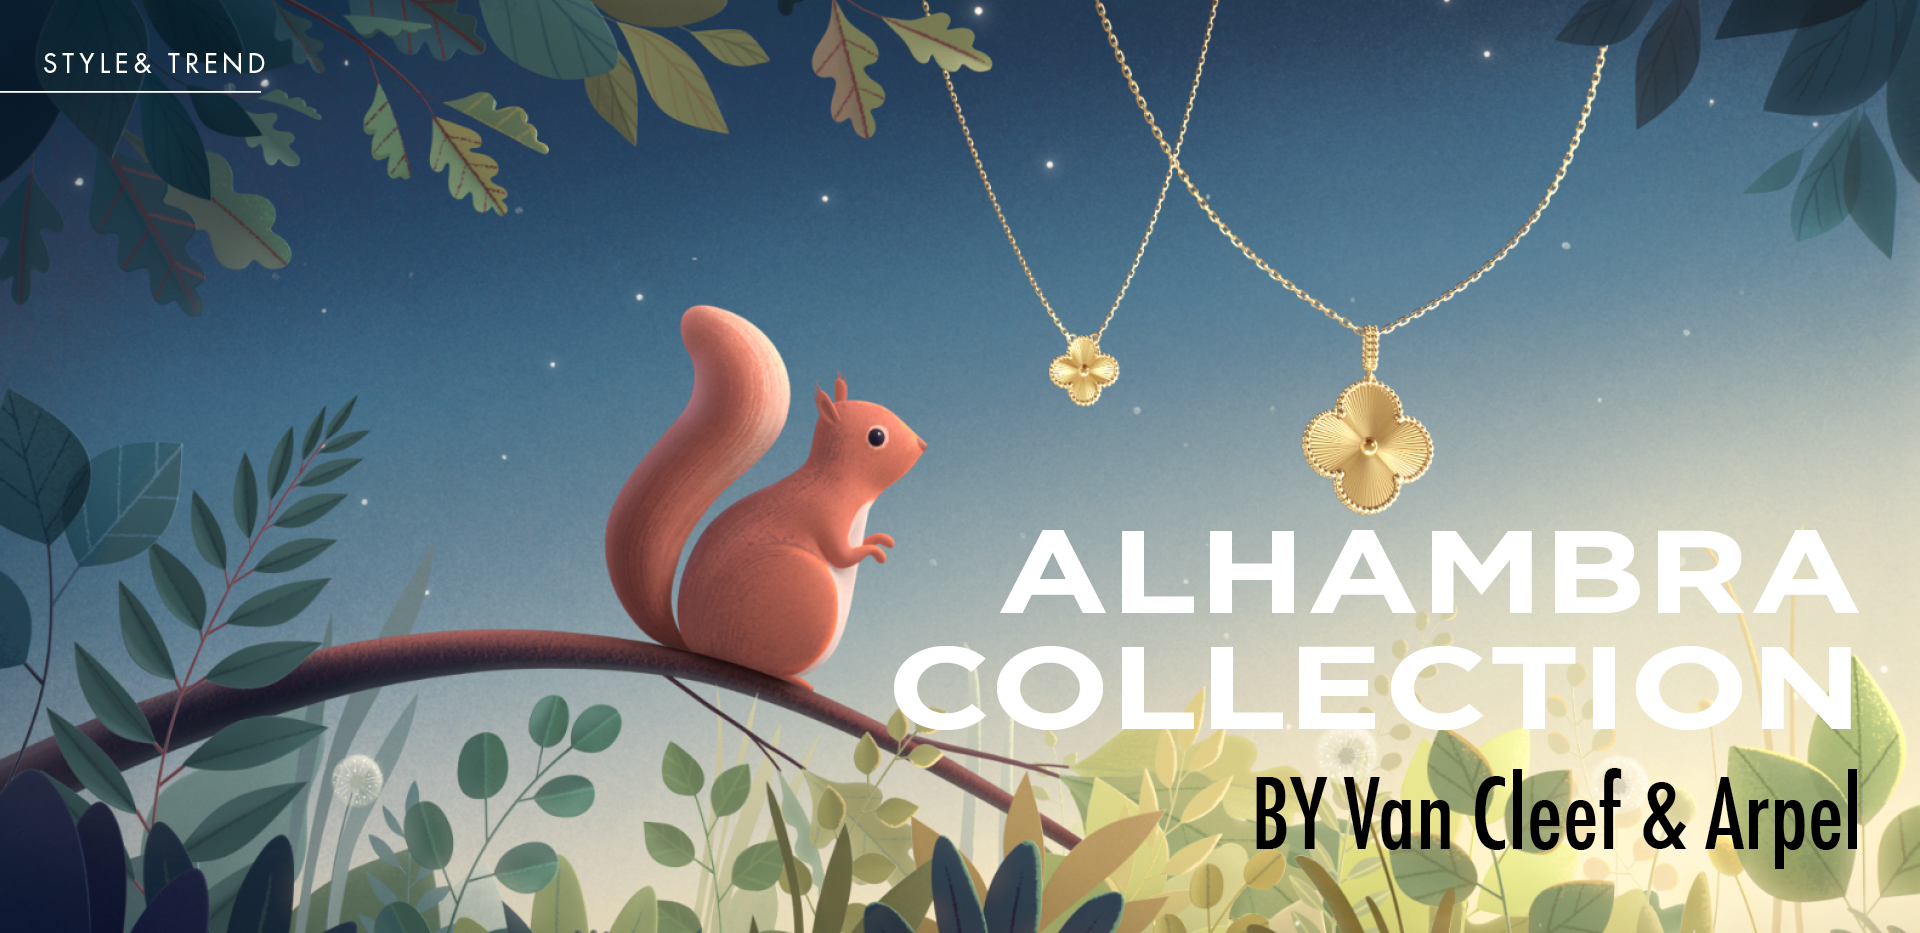 Alhambra collection BY Van Cleef & Arpels